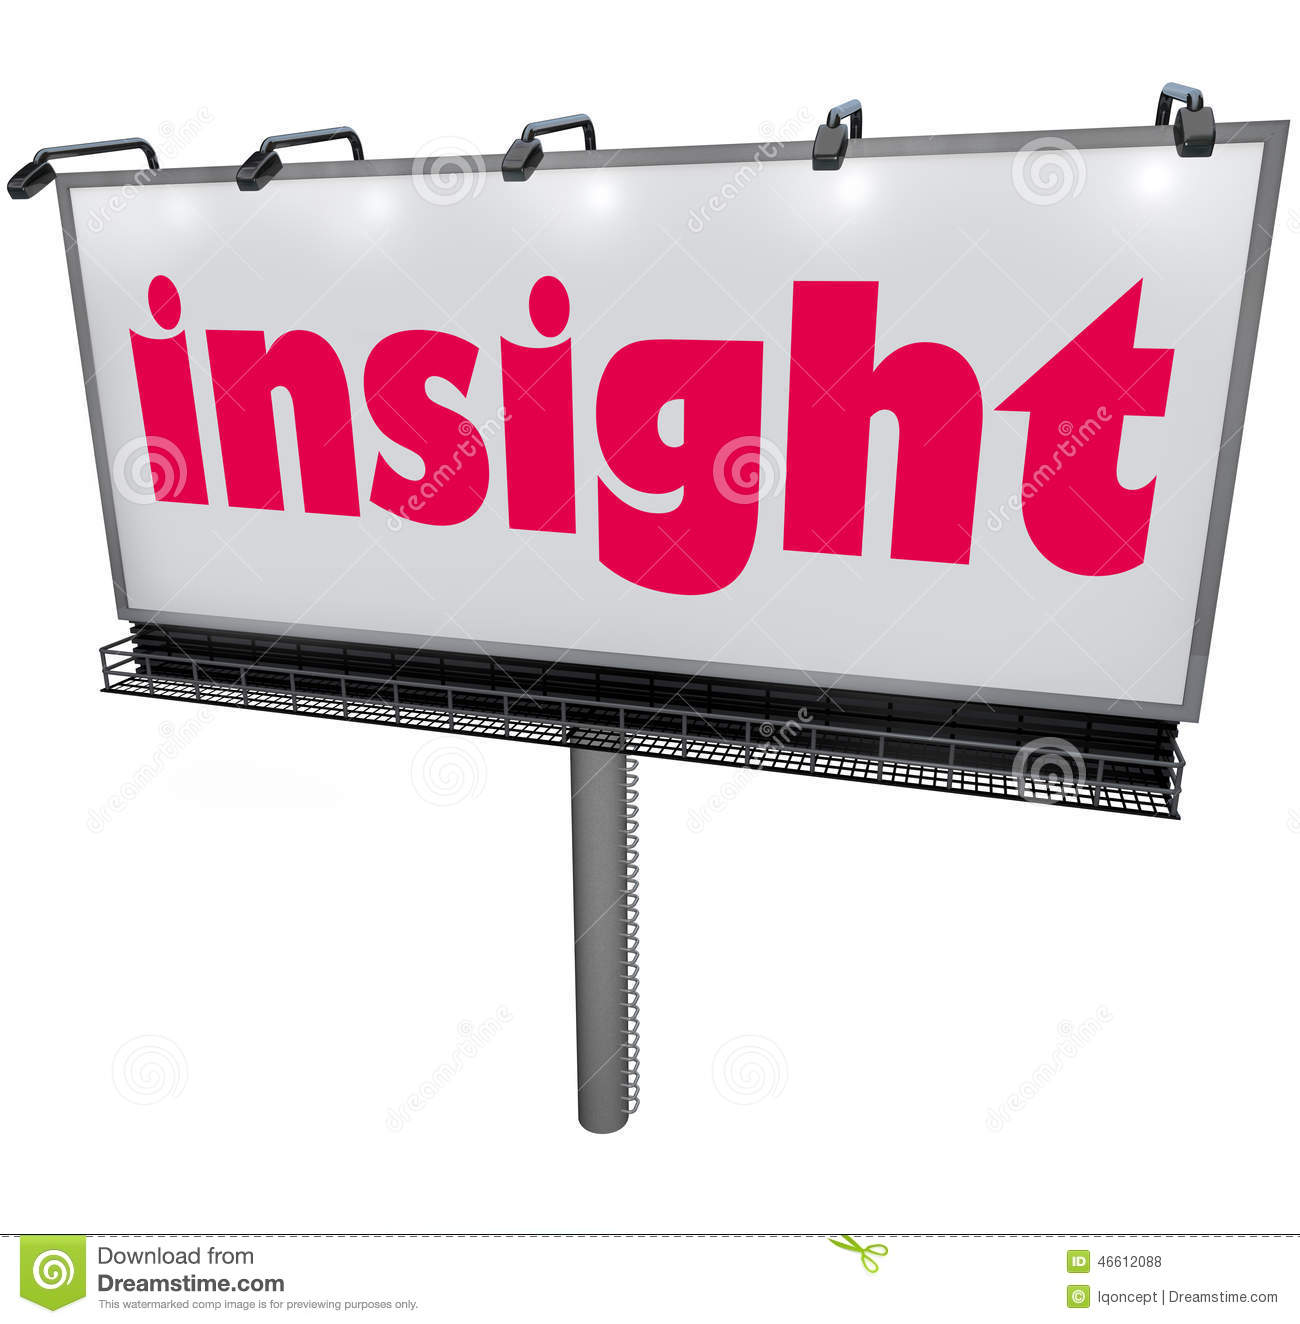 Insights clipart.